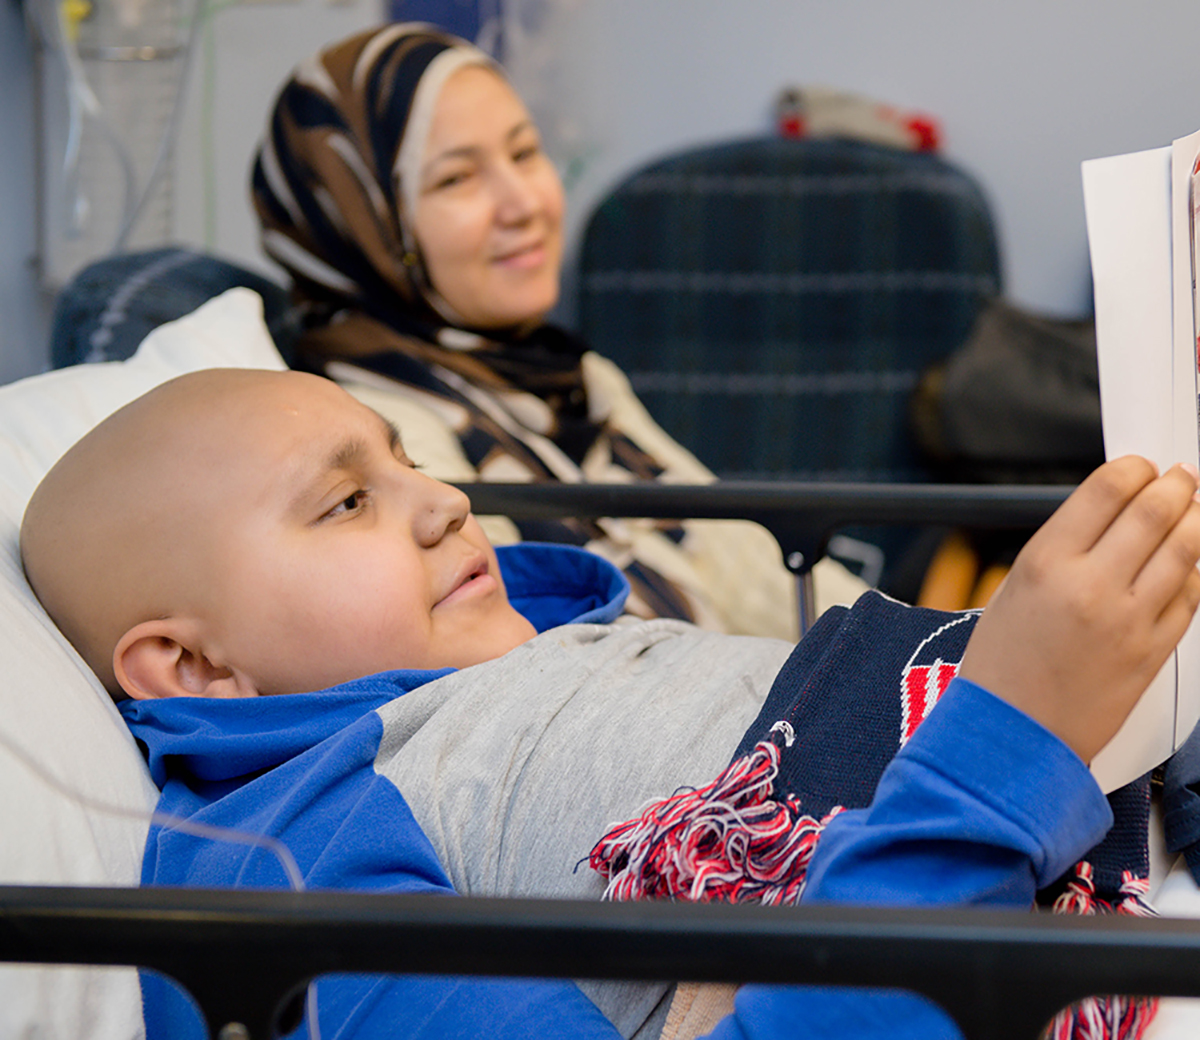 Youssef, a patient in Cancer in Blood Disorders, is pictured with his mom during an inpatient stay